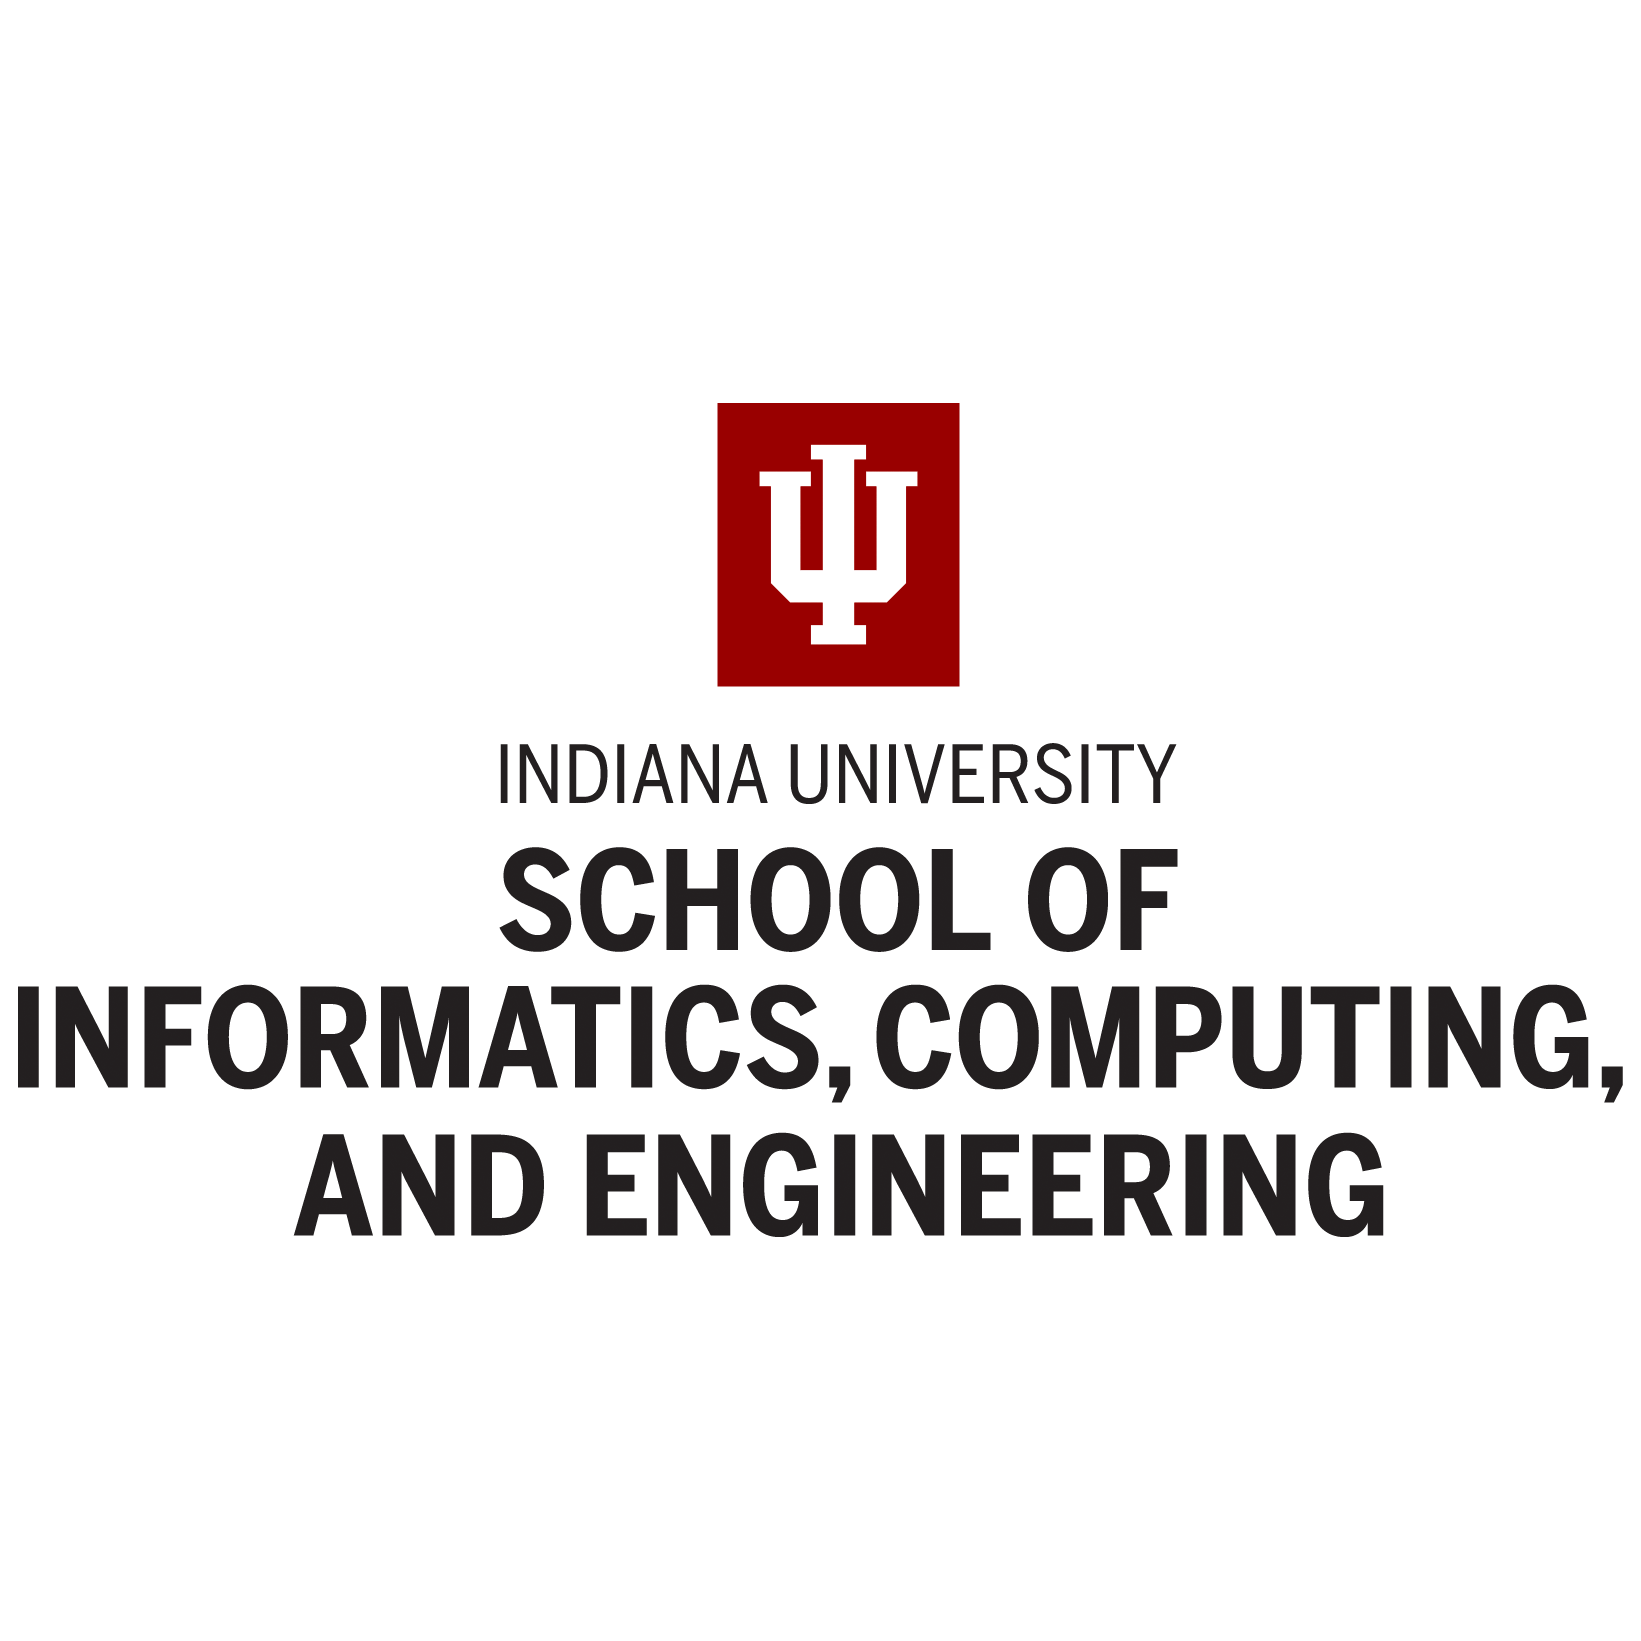 College Intelligent Systems Engineering at the Indiana University Bloomington School of Informatics, Computing, and Engineering